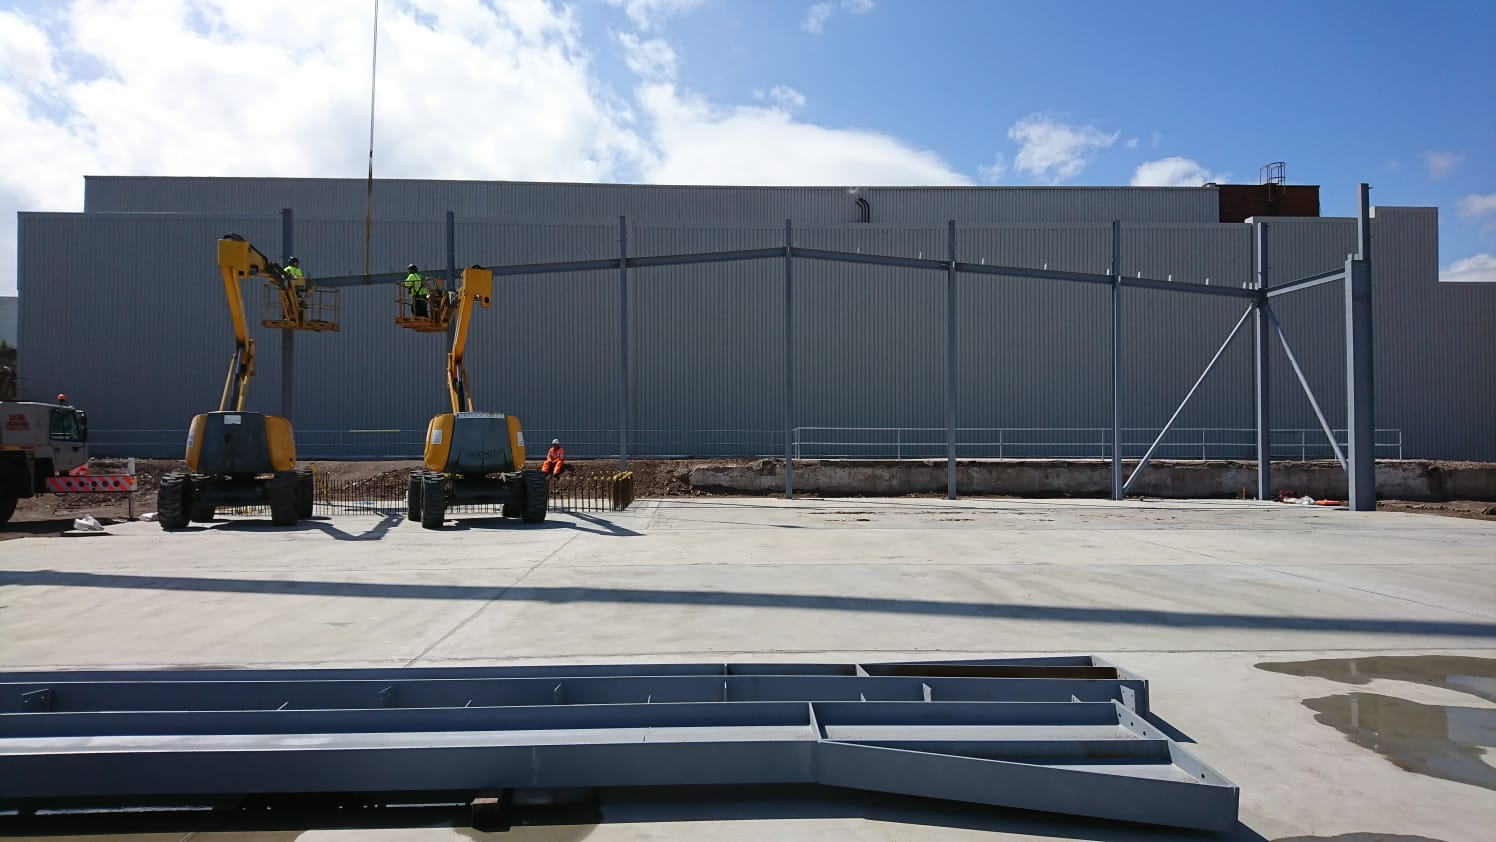 The start of the steel structure being put into place, creating the frame work of the energy centre.